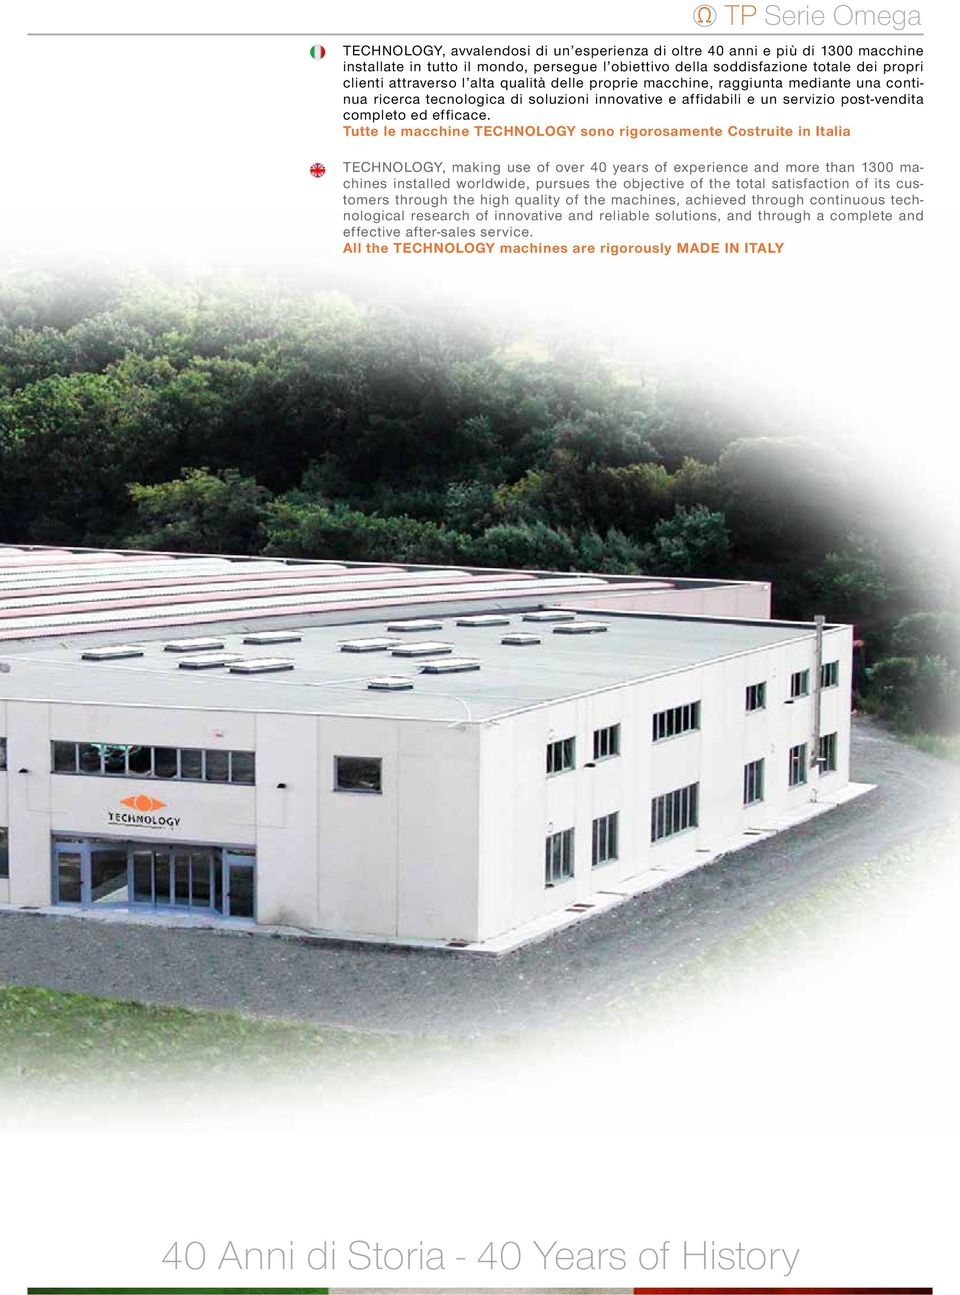 Tutte le macchine TECHNOLOGY sono rigorosamente Costruite in Italia TECHNOLOGY, making use of over 40 years of experience and more than 1300 machines installed worldwide, pursues the objective of the